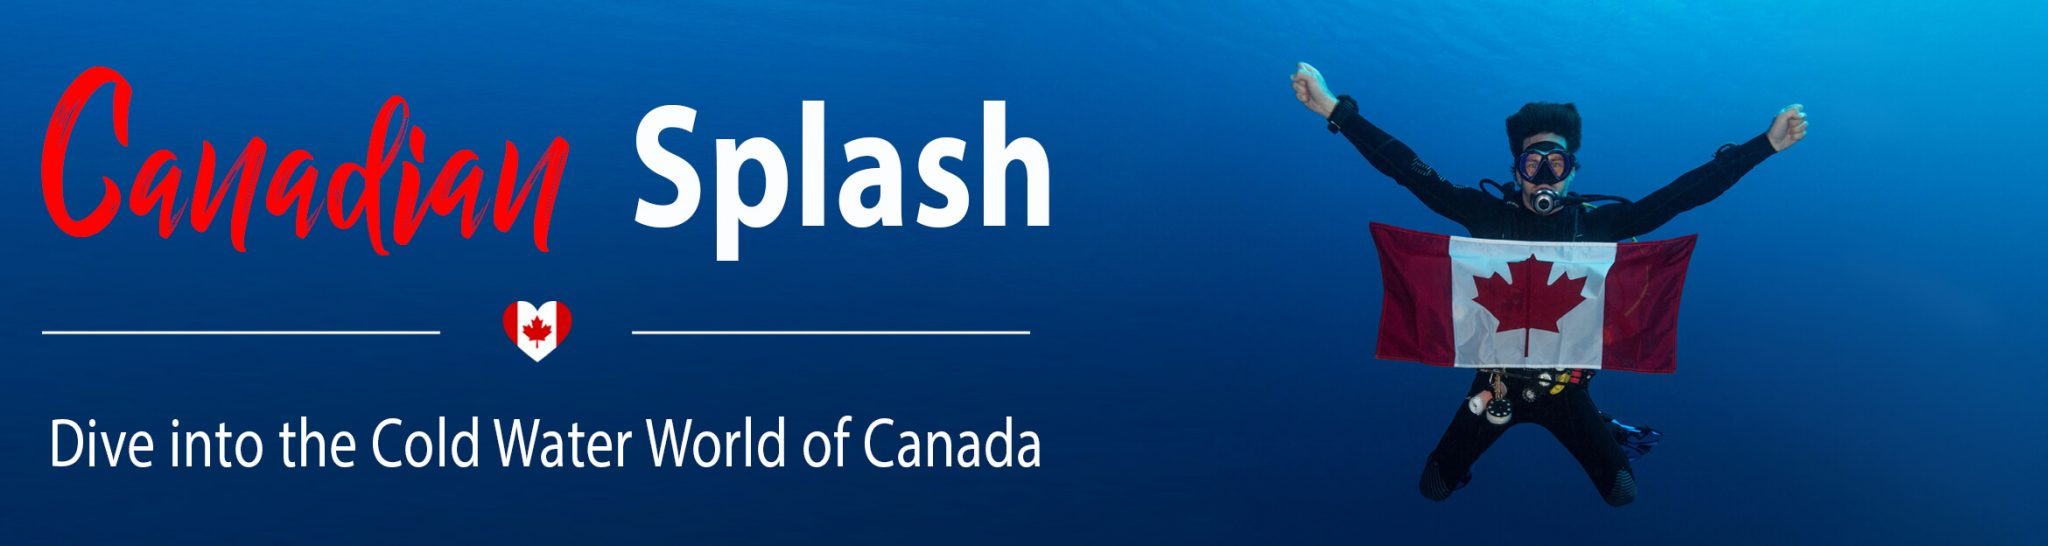 Canadian Splash - Dive into the Cold Water World of Canada